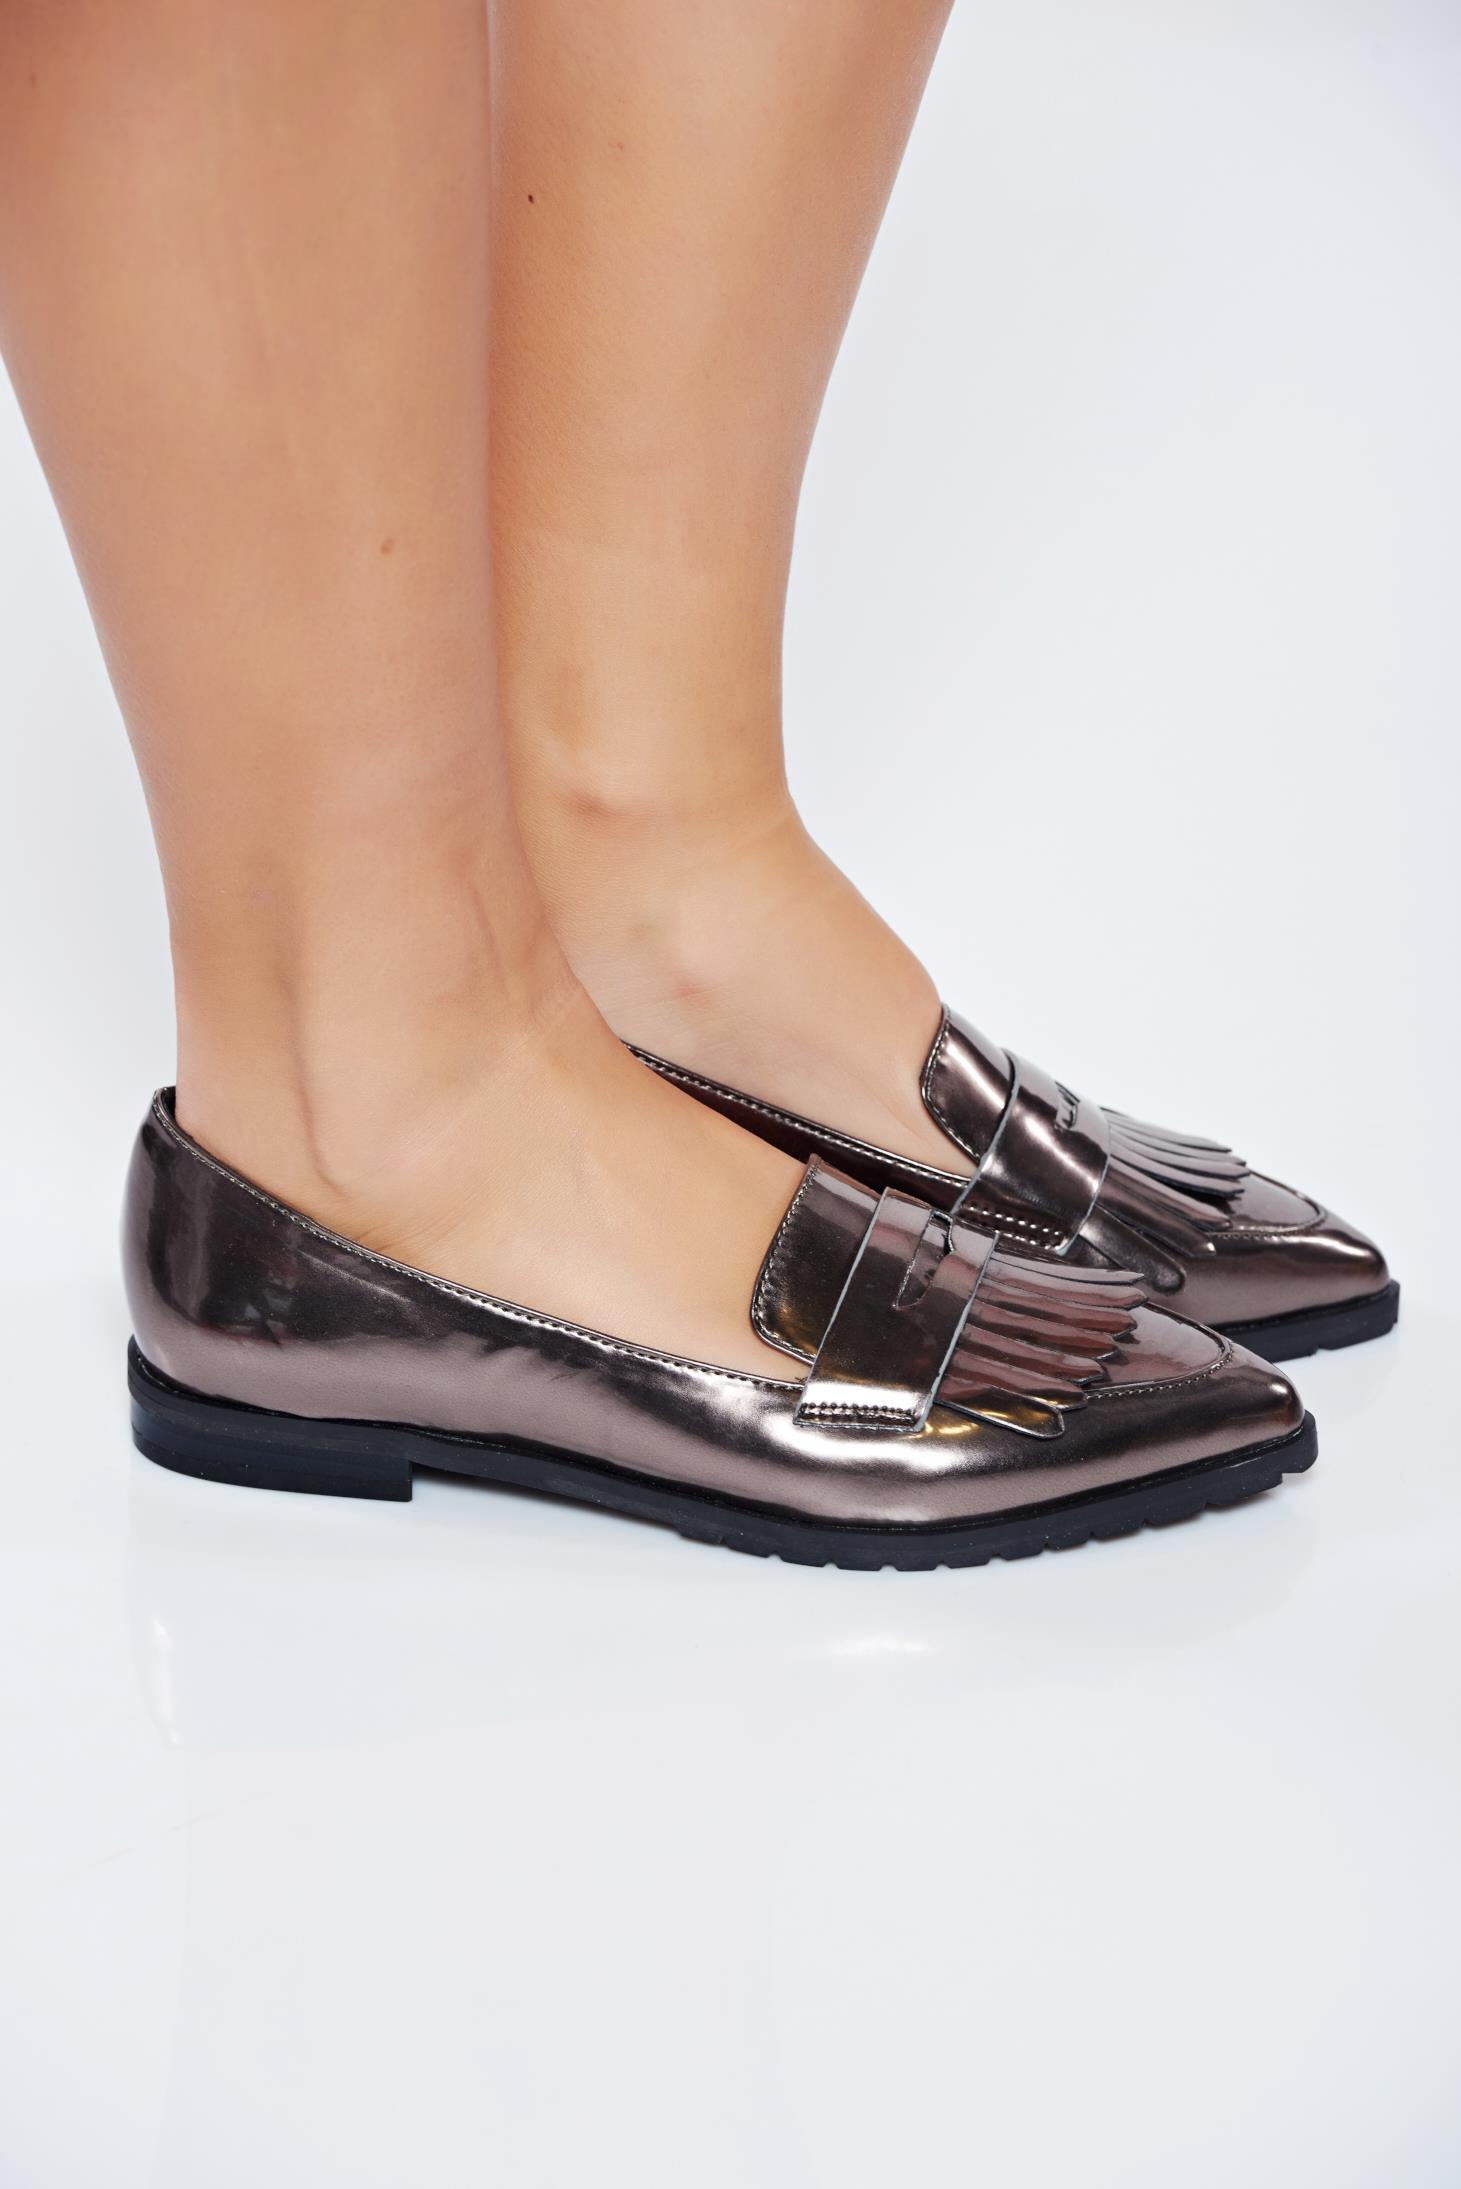 e9329bf3cae Top secret silver loafers light sole with metallic aspect from ecological  leather jpg 1461x2189 Silver loafers